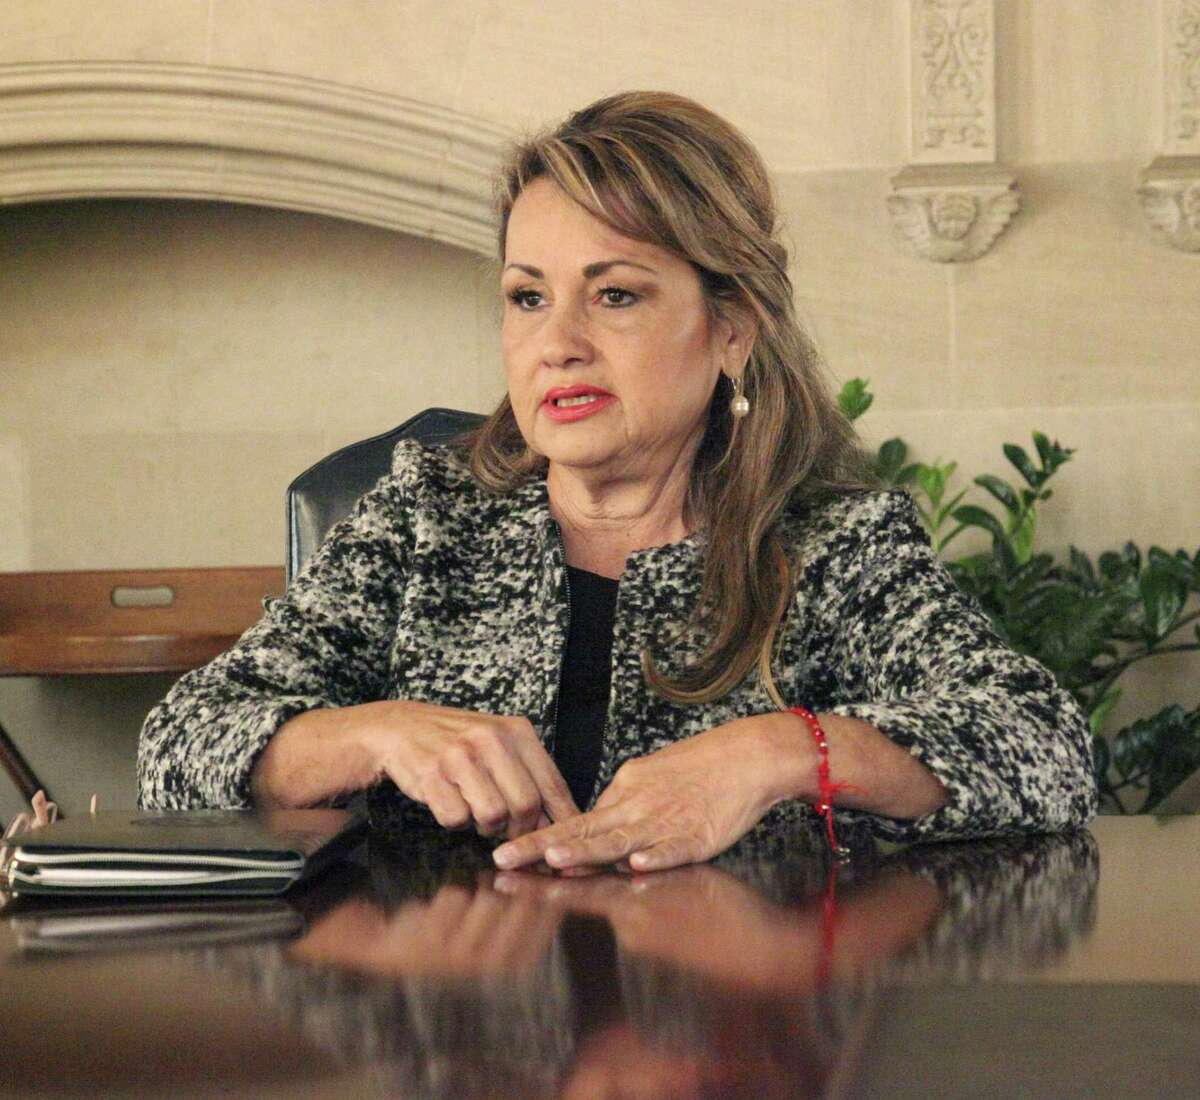 Helen Madla-Prather, the trustee for District 6, has resigned from the South San Antonio Independent School District because she'll be moving to Del Rio.